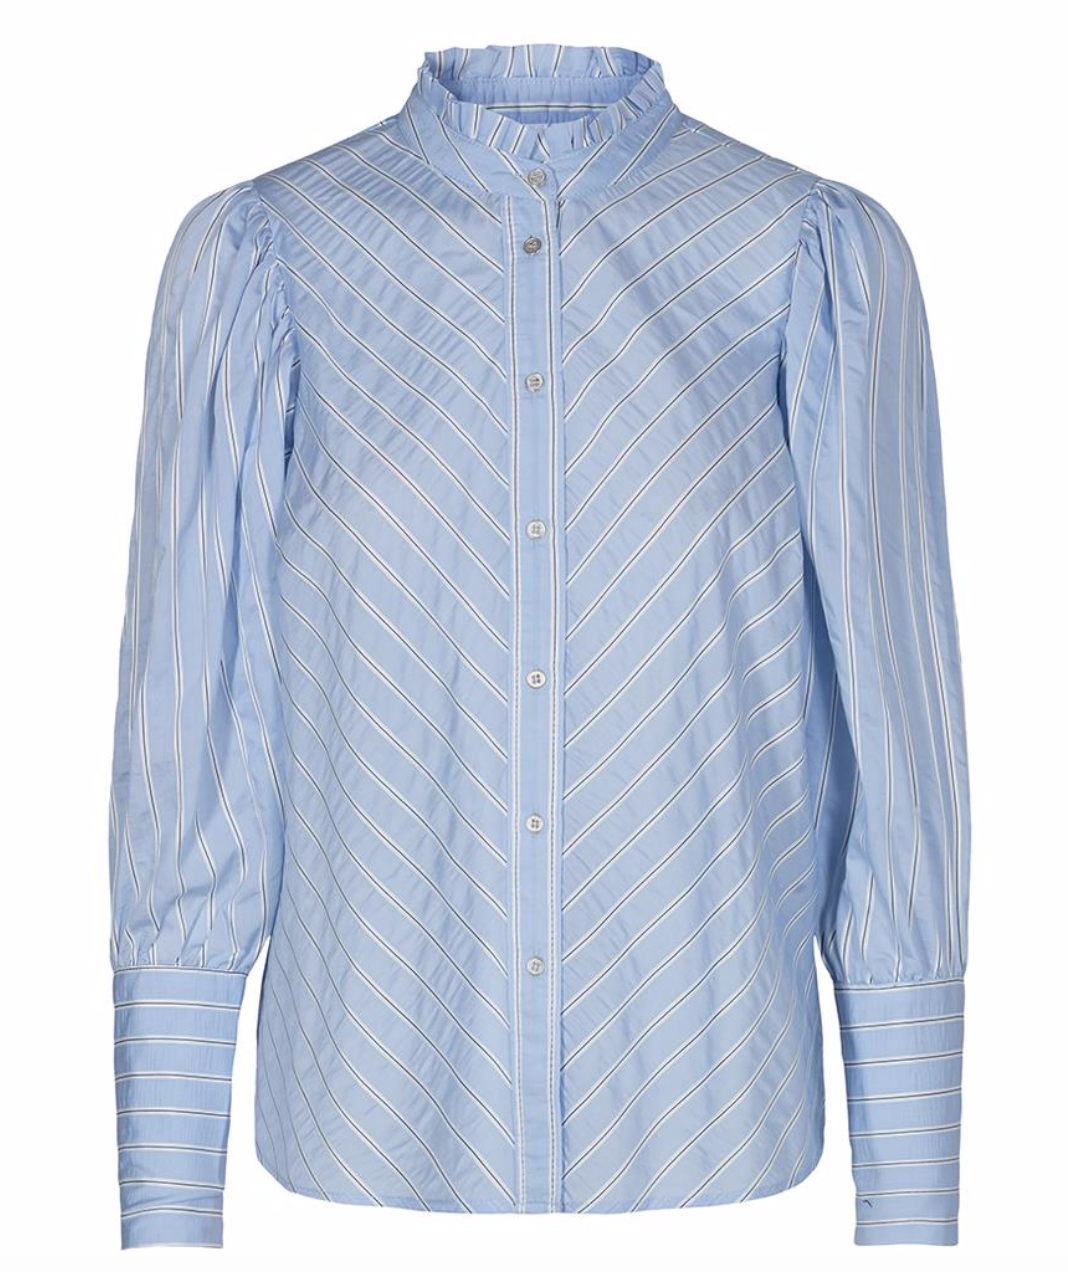 Co'Couture Dina stripe shirt - Pale blue